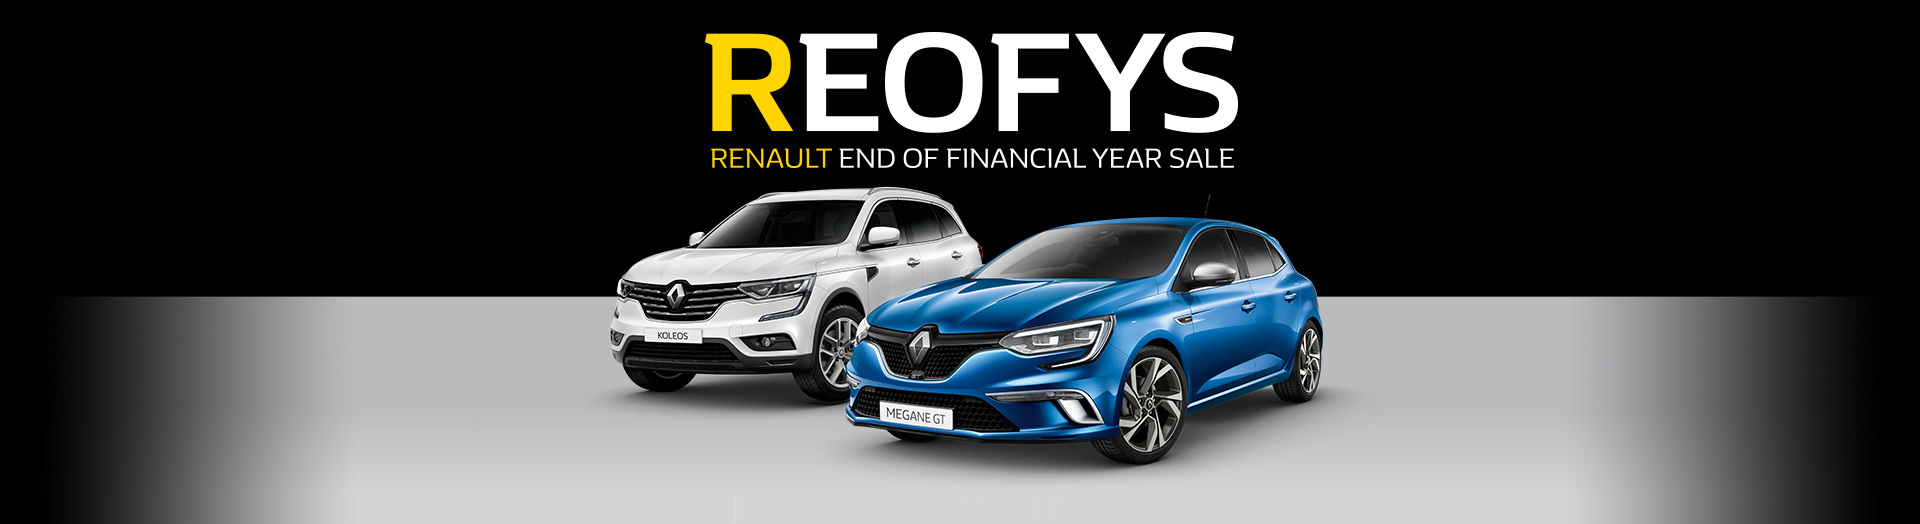 Renault - National Offer - REOFYS Renault End Of Financial Year Sale